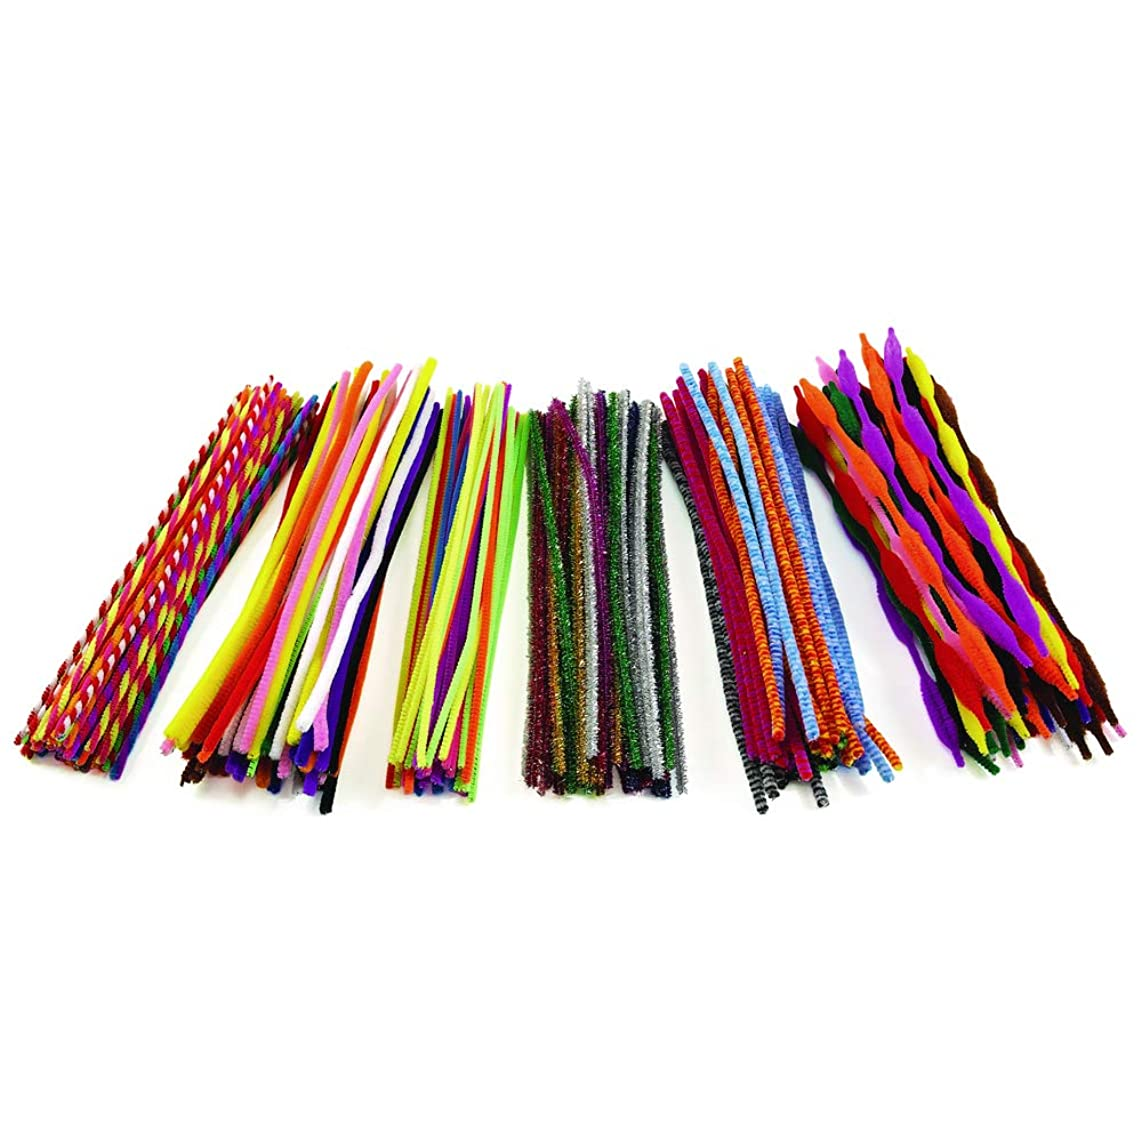 Colorations PCPACK Pipe Cleaner Classroom Pack 2 (Pack of 250)